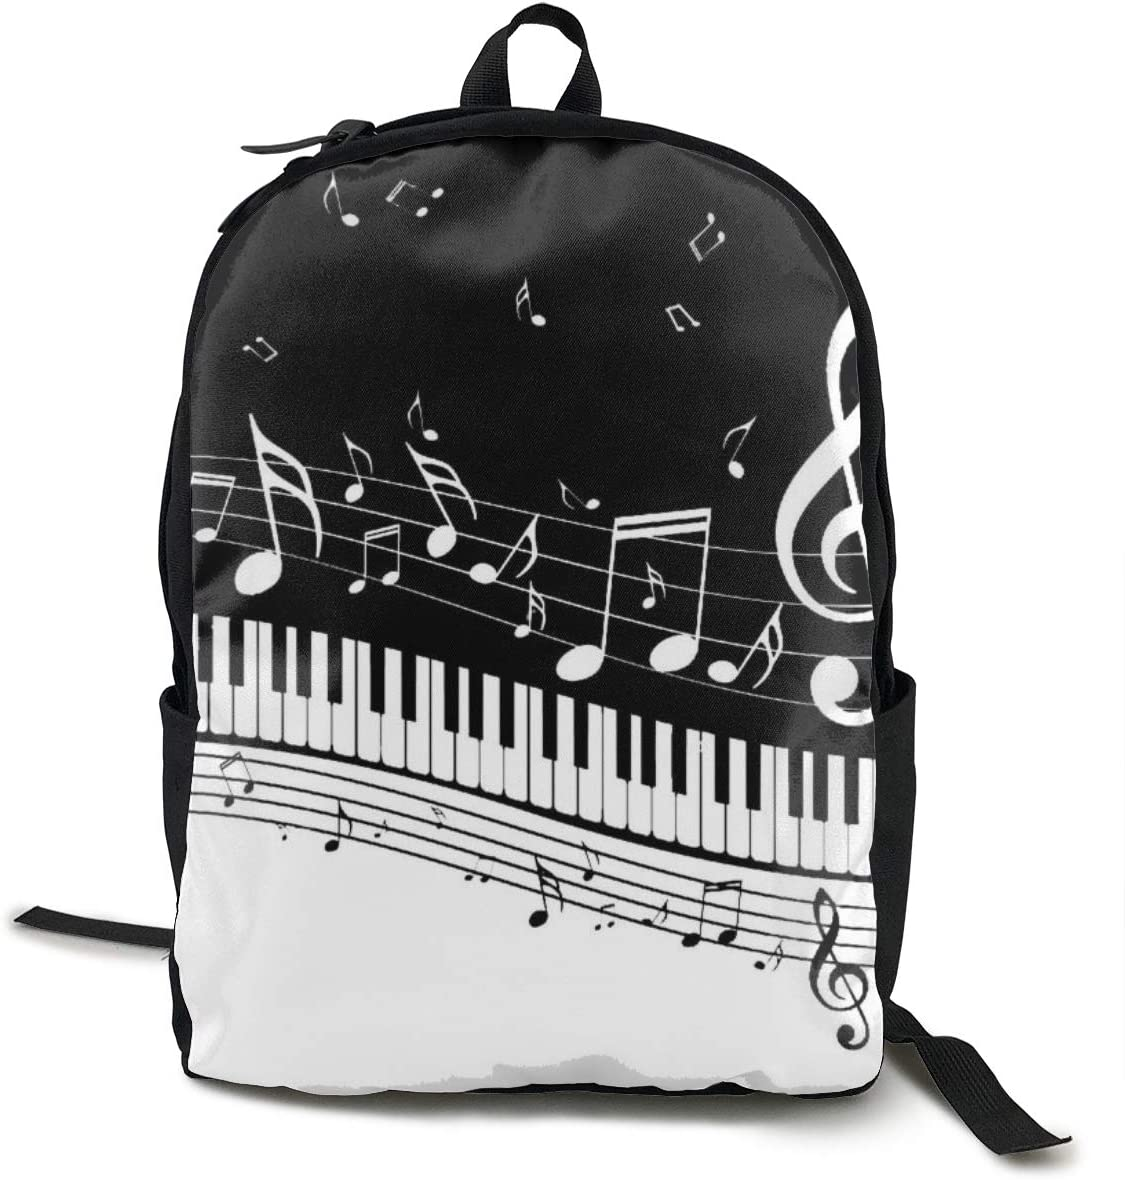 Fashion Casual Daypack Large Capacity Anti-Theft Multipurpose Laptop Backpack Travel Business Backpack School College Students Bookbag, Piano Keys with Musical Notes